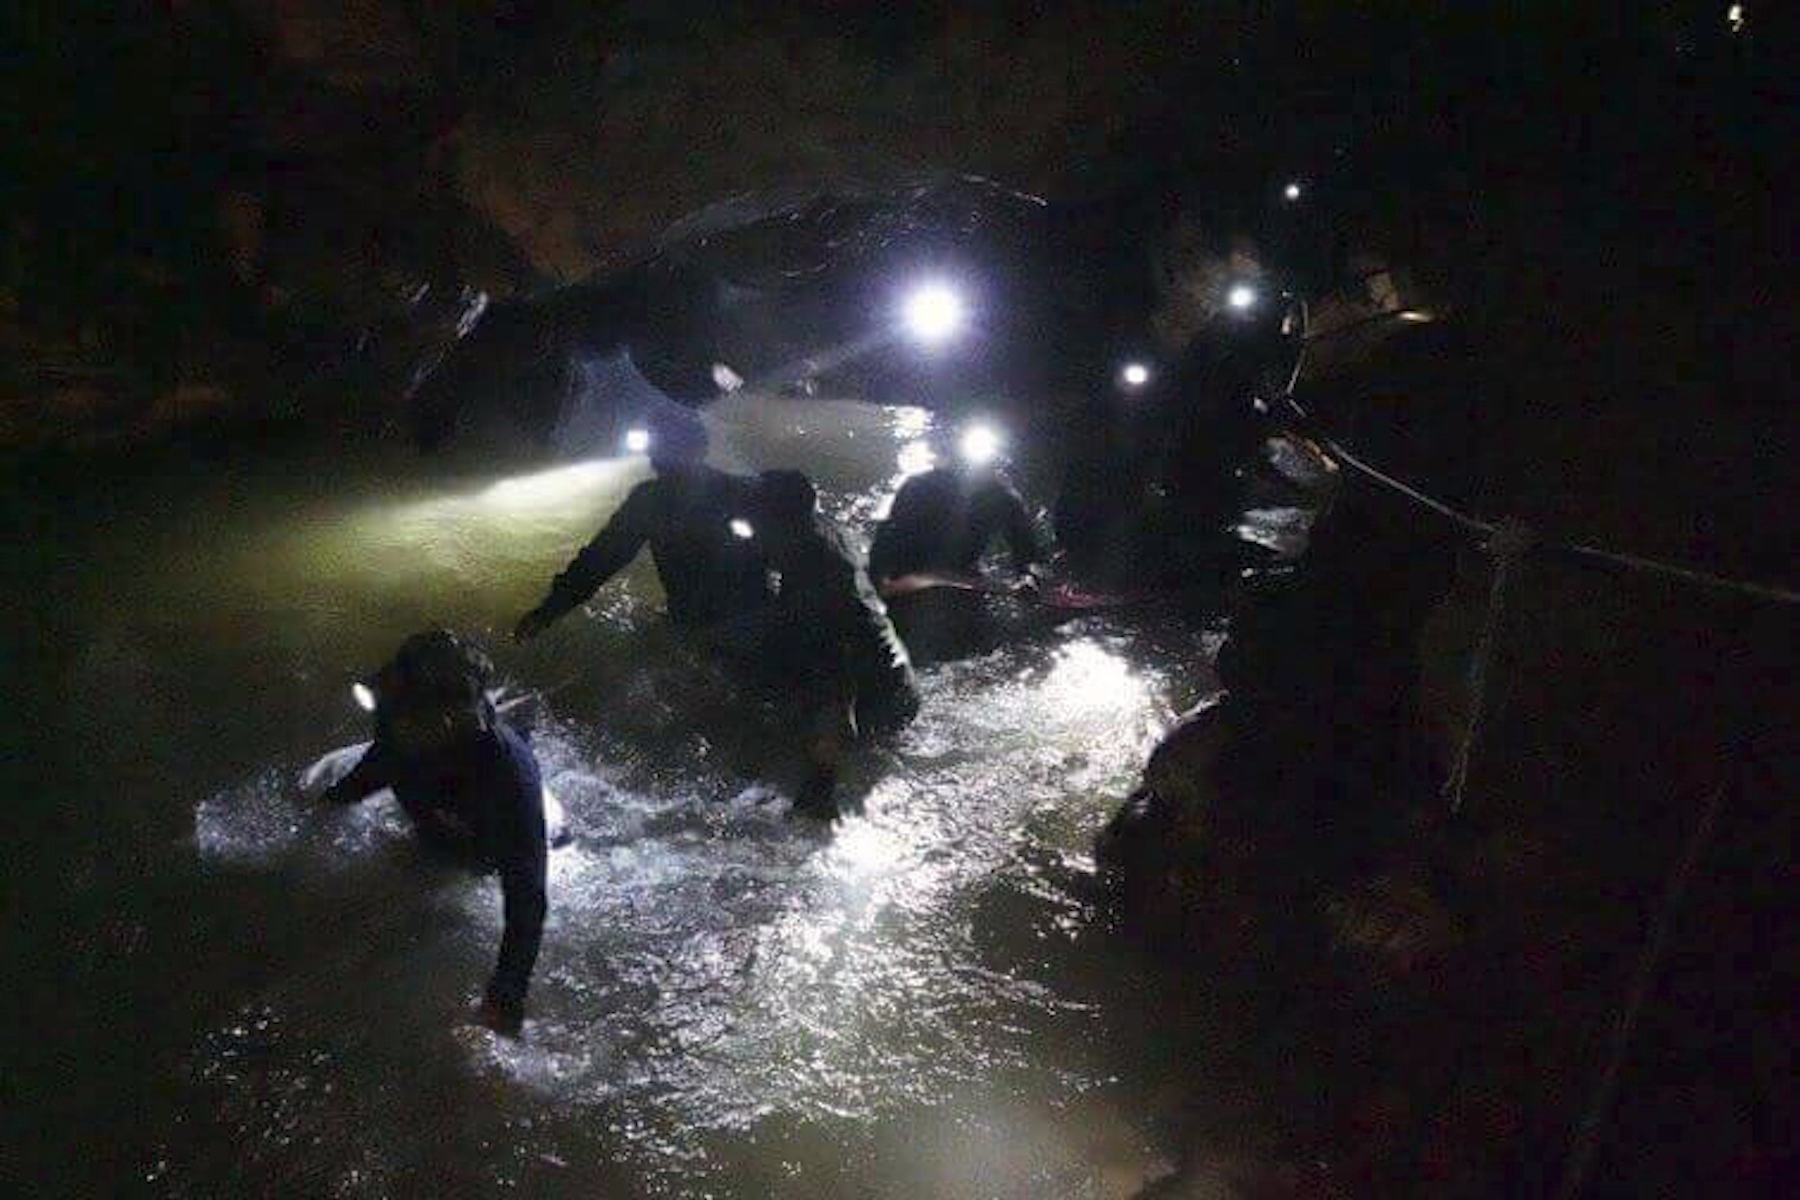 "<div class=""meta image-caption""><div class=""origin-logo origin-image ap""><span>AP</span></div><span class=""caption-text"">Thai rescues team walk inside cave complex where 12 boys and their soccer coach went missing, in Mae Sai, Chiang Rai province, in northern Thailand, Monday, July 2, 2018. (Tham Luang Rescue Operation Center via AP)</span></div>"